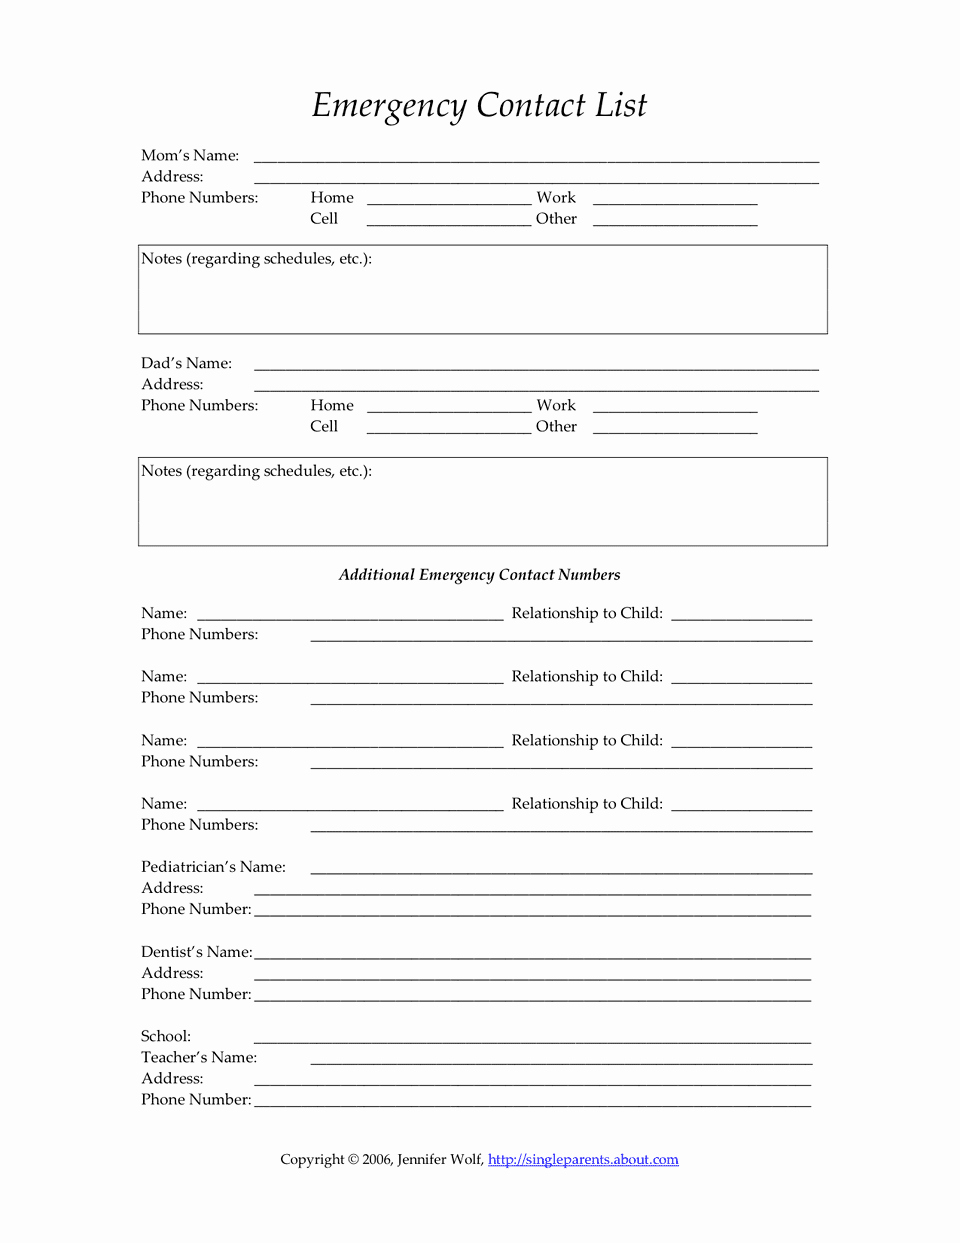 Emergency Contact List for Nanny New form Templates Child Care Emergency Contact form Child